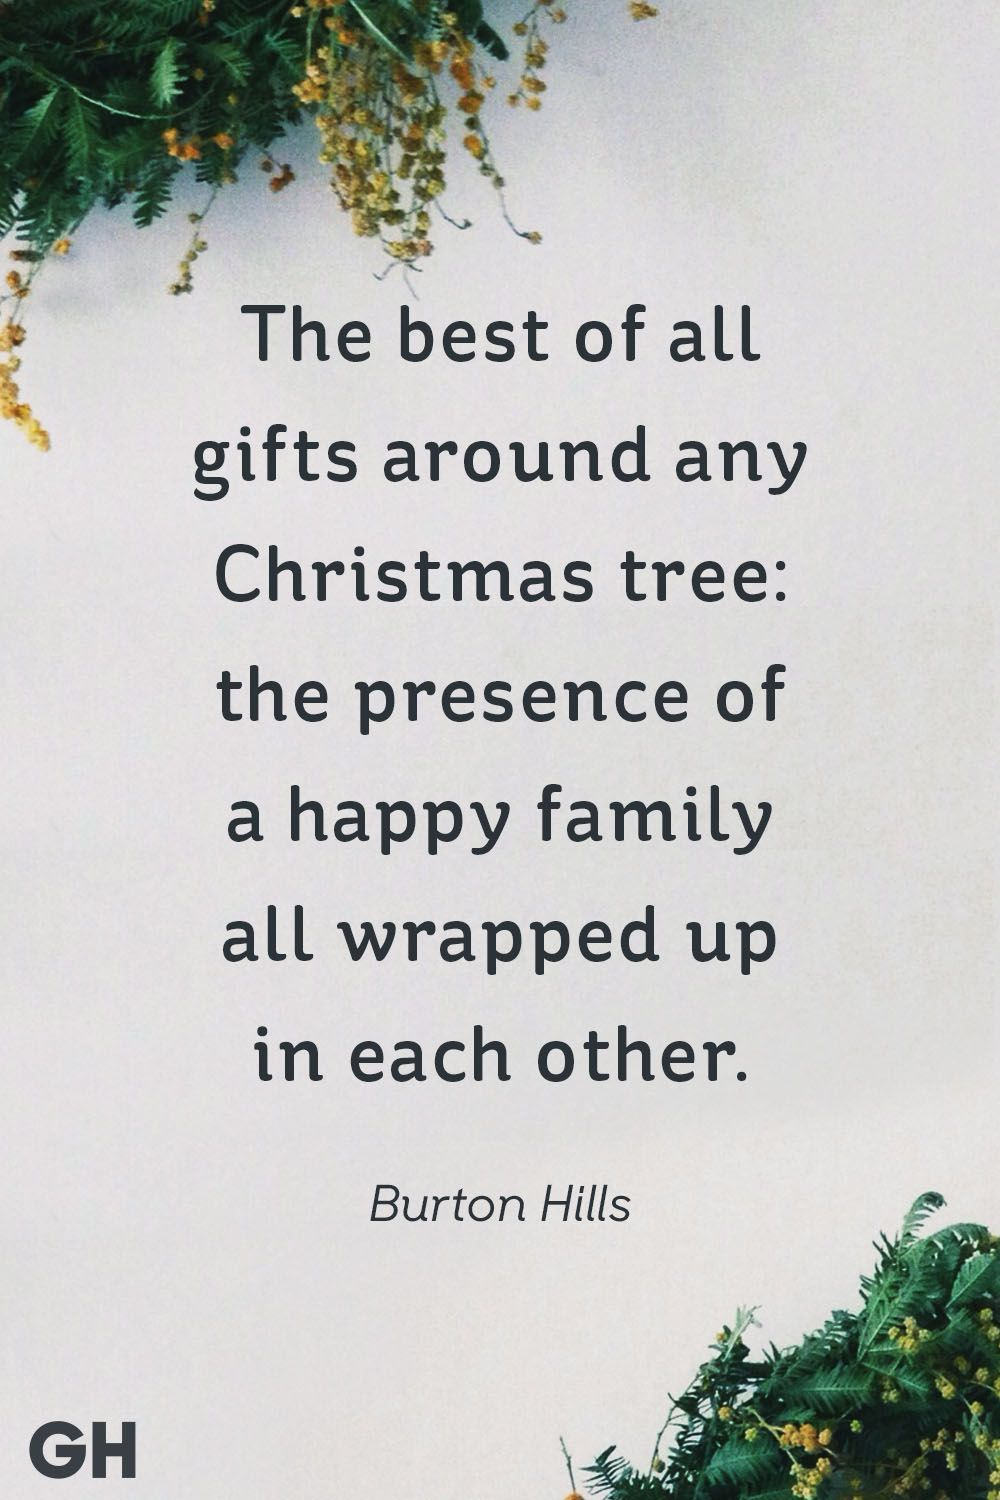 33 Best Christmas Quotes of All Time - Festive Holiday Sayings